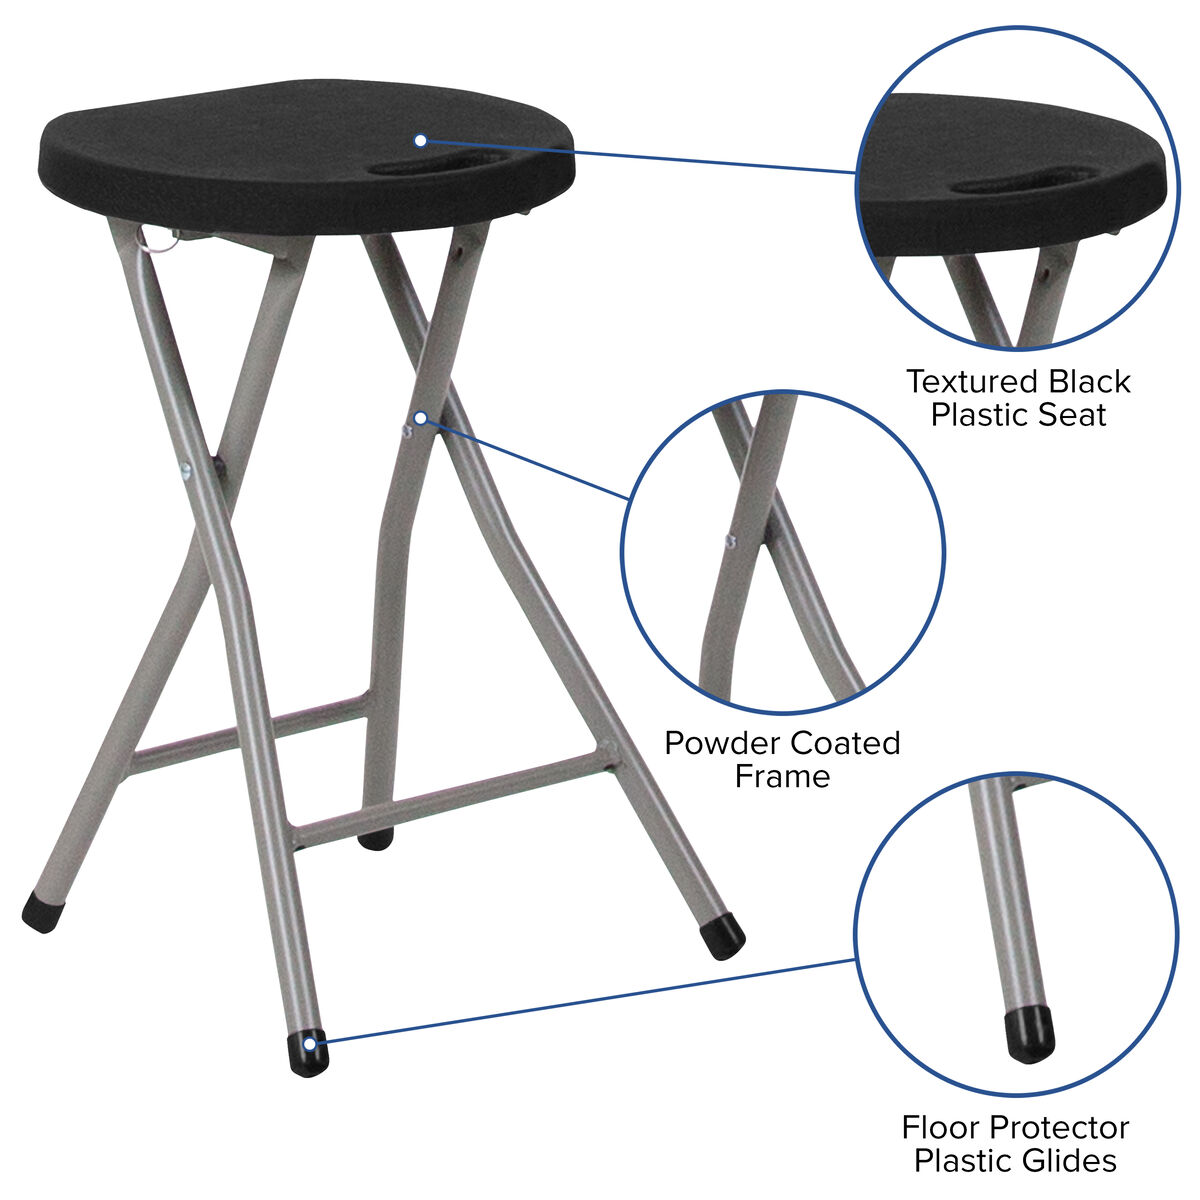 Incredible Foldable Stool With Black Plastic Seat And Titanium Gray Frame Uwap Interior Chair Design Uwaporg